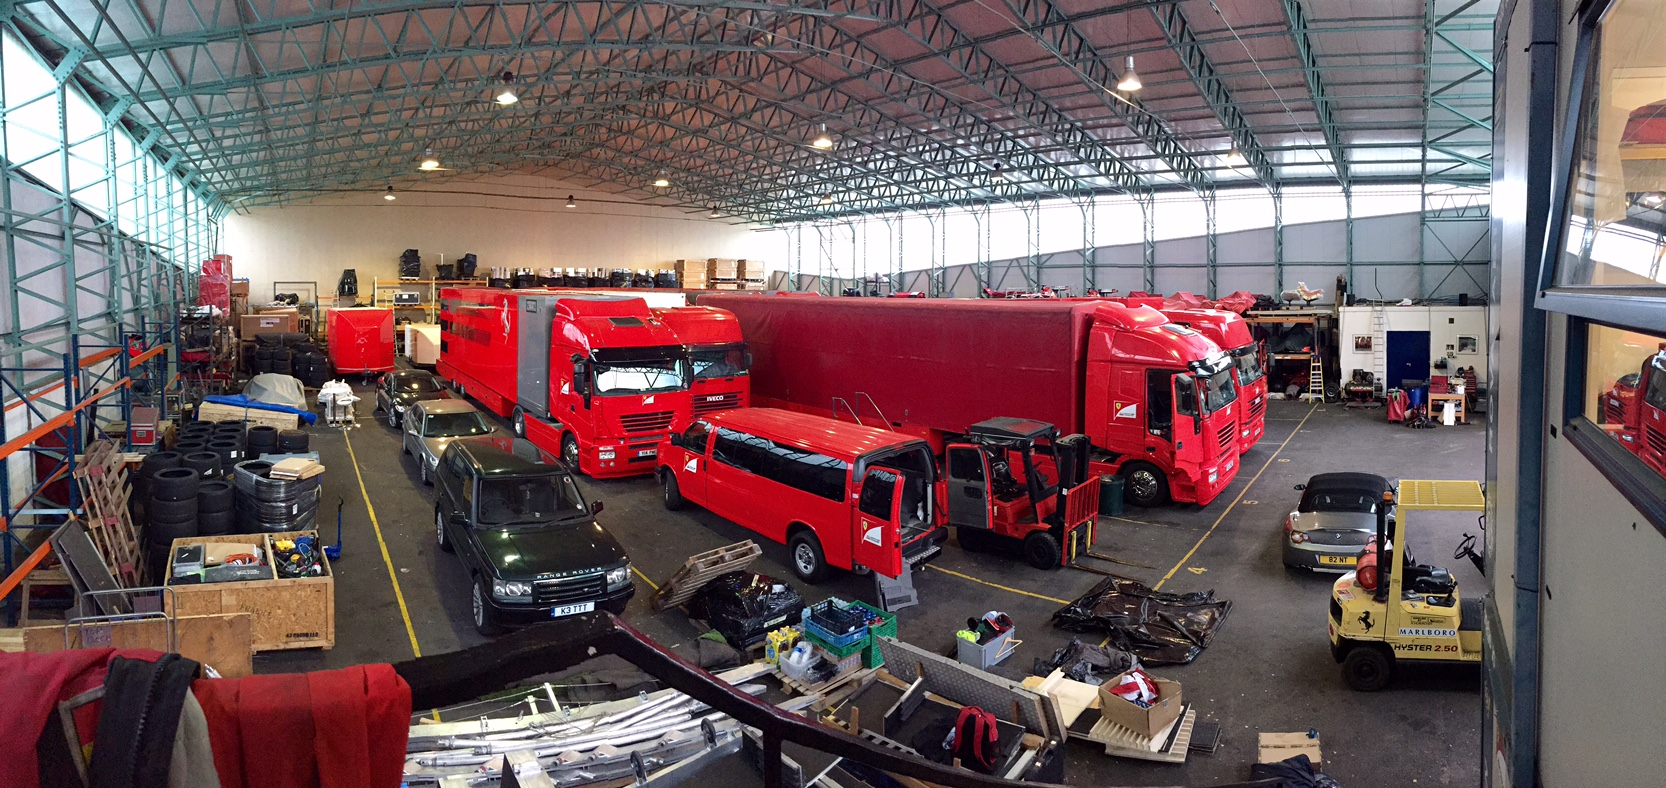 The Procar F1 Paddock Complex crew finishing off the European season